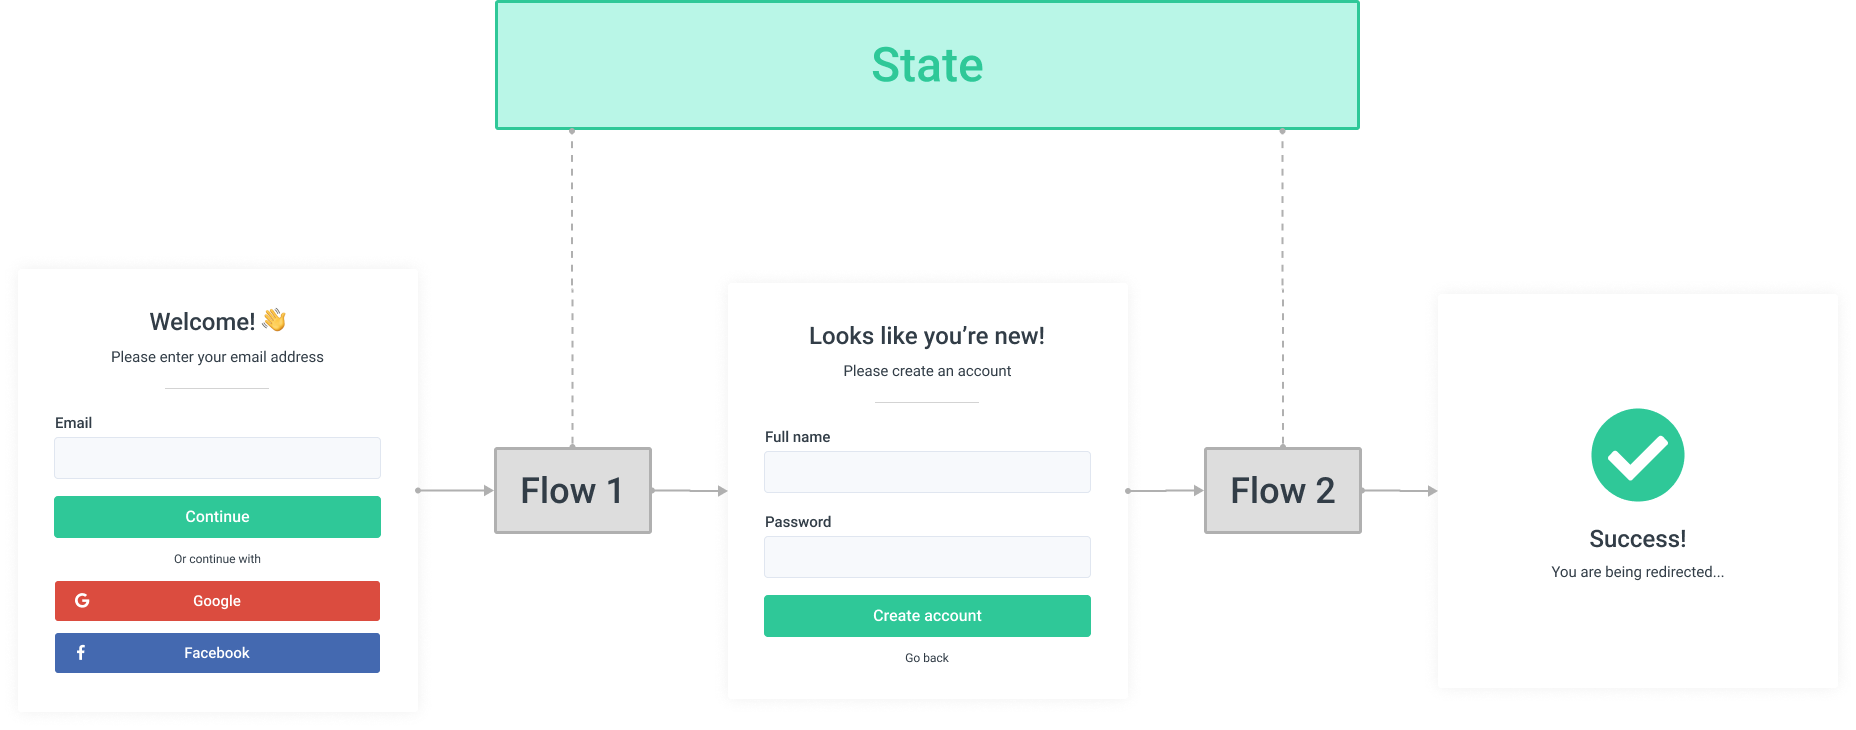 Shared state in between flows (submission journey)